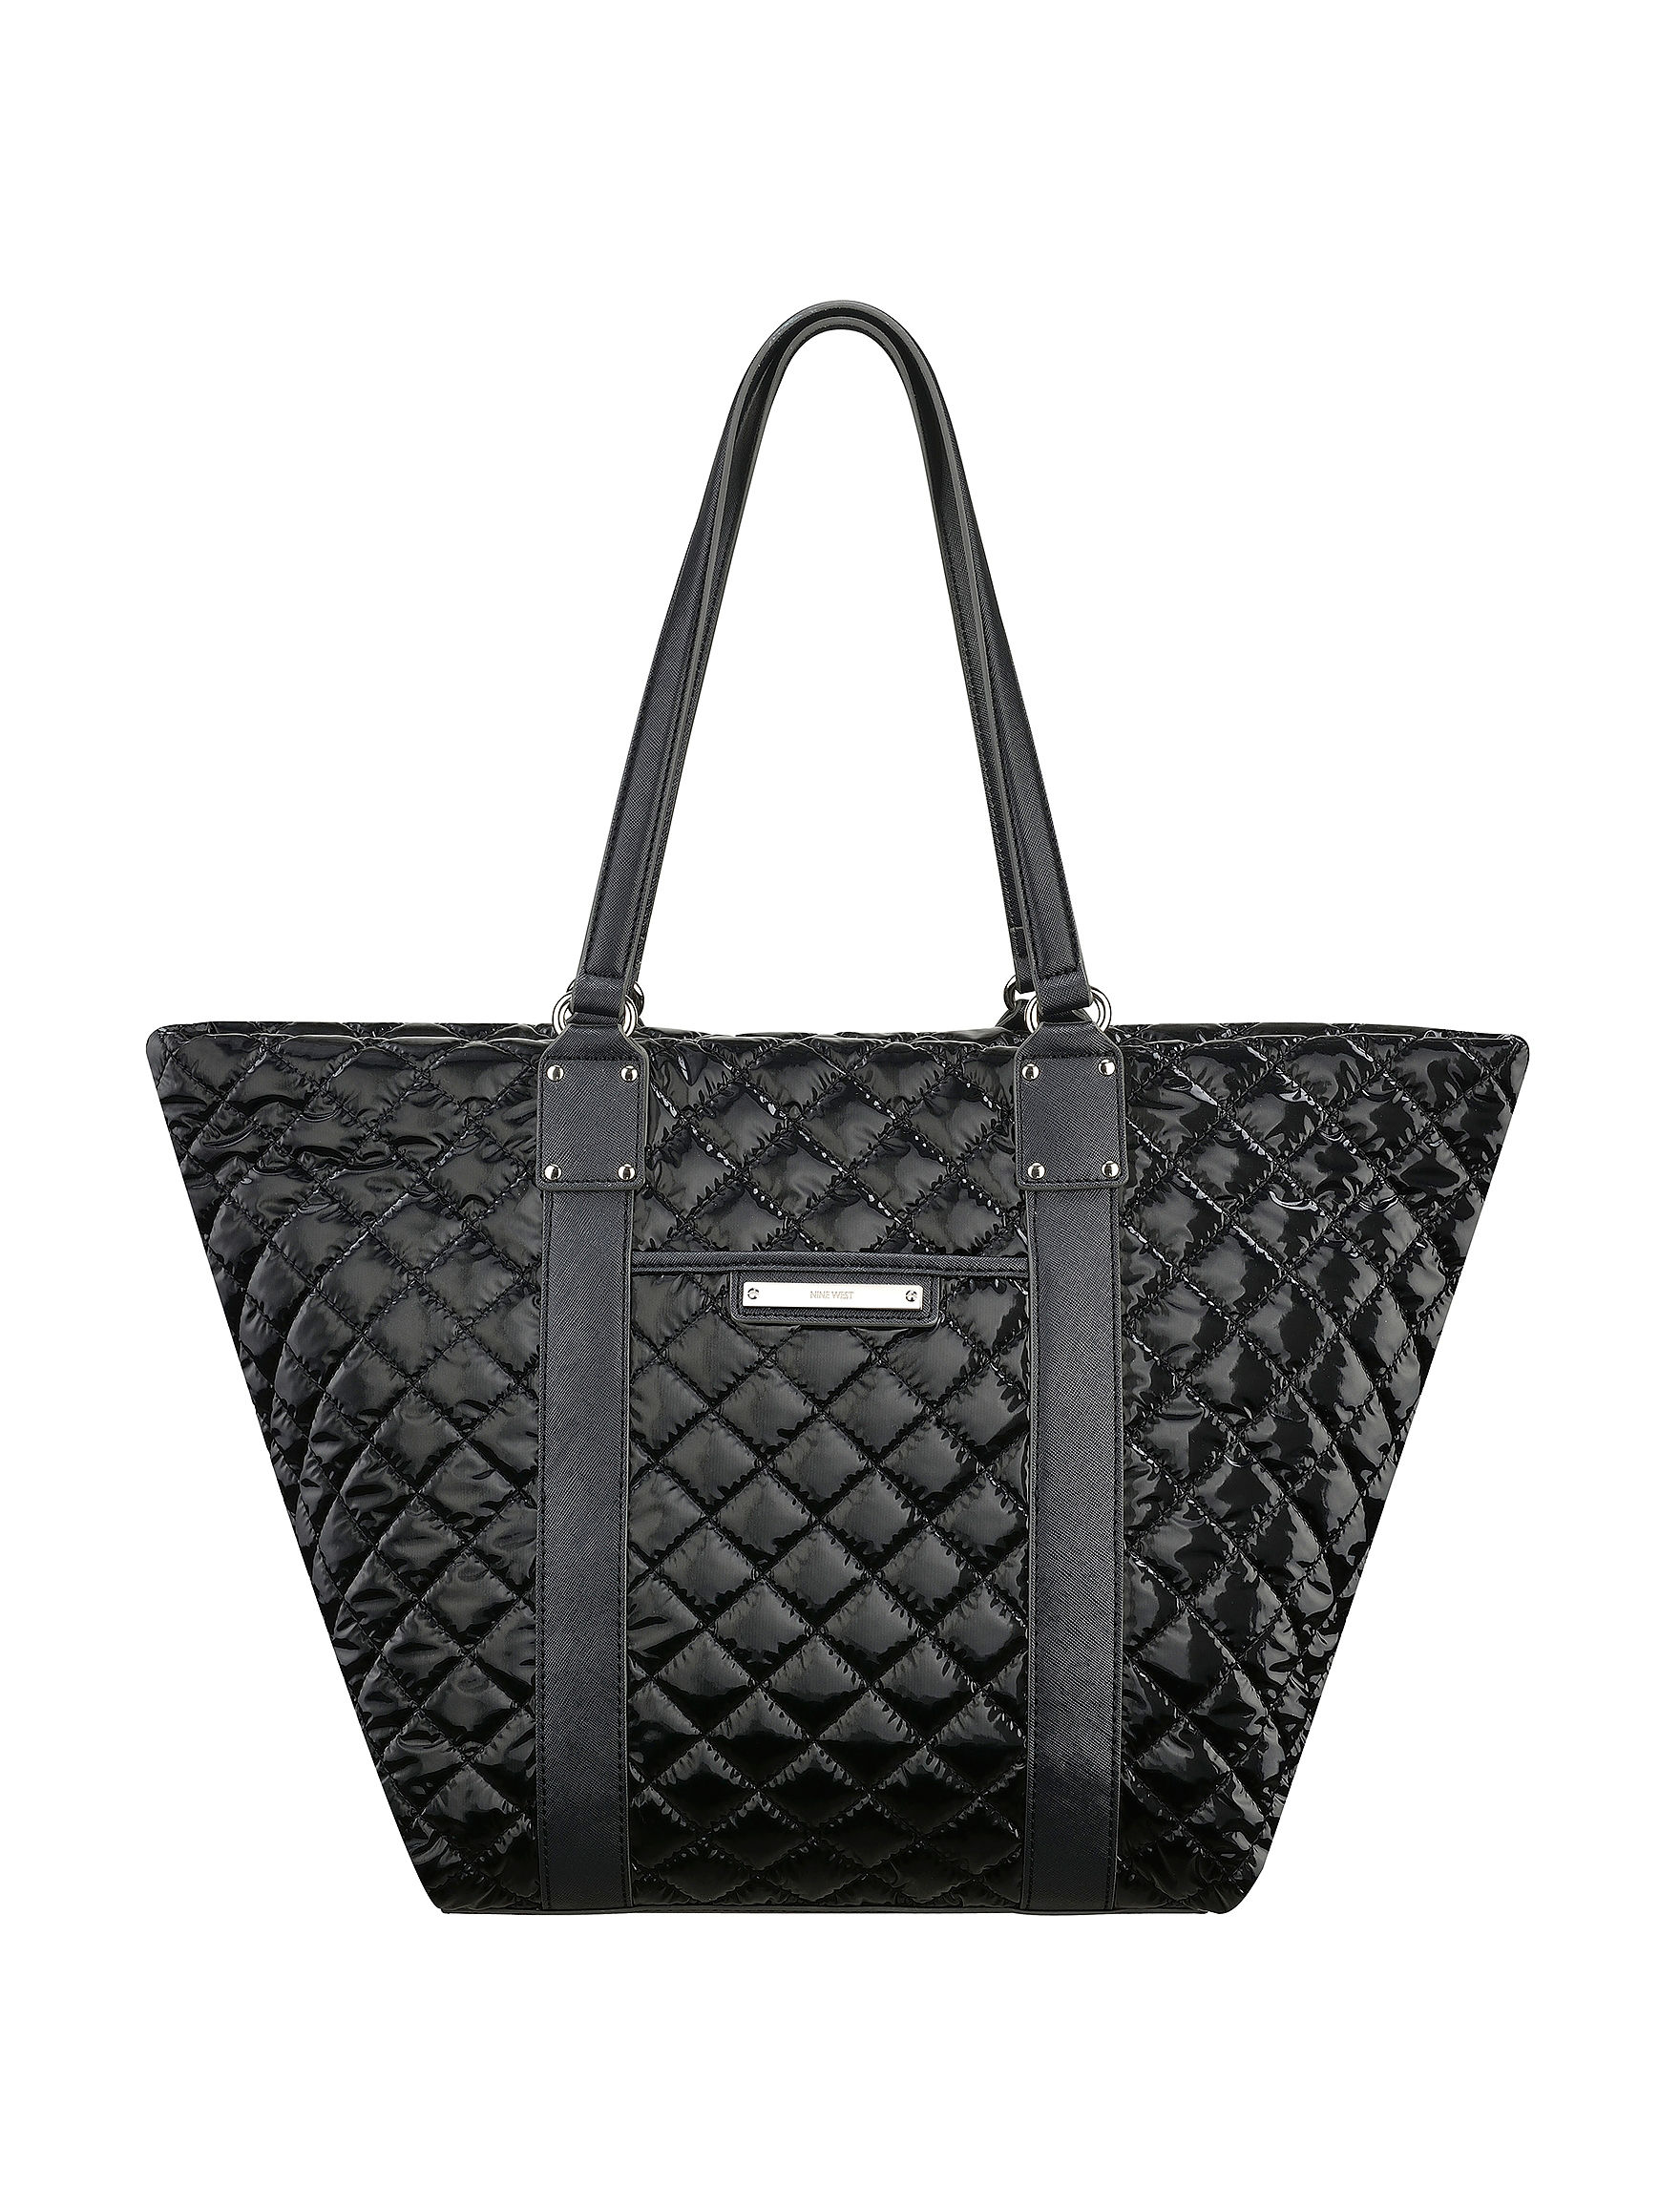 Nine West Spaces Between Tote Handbag